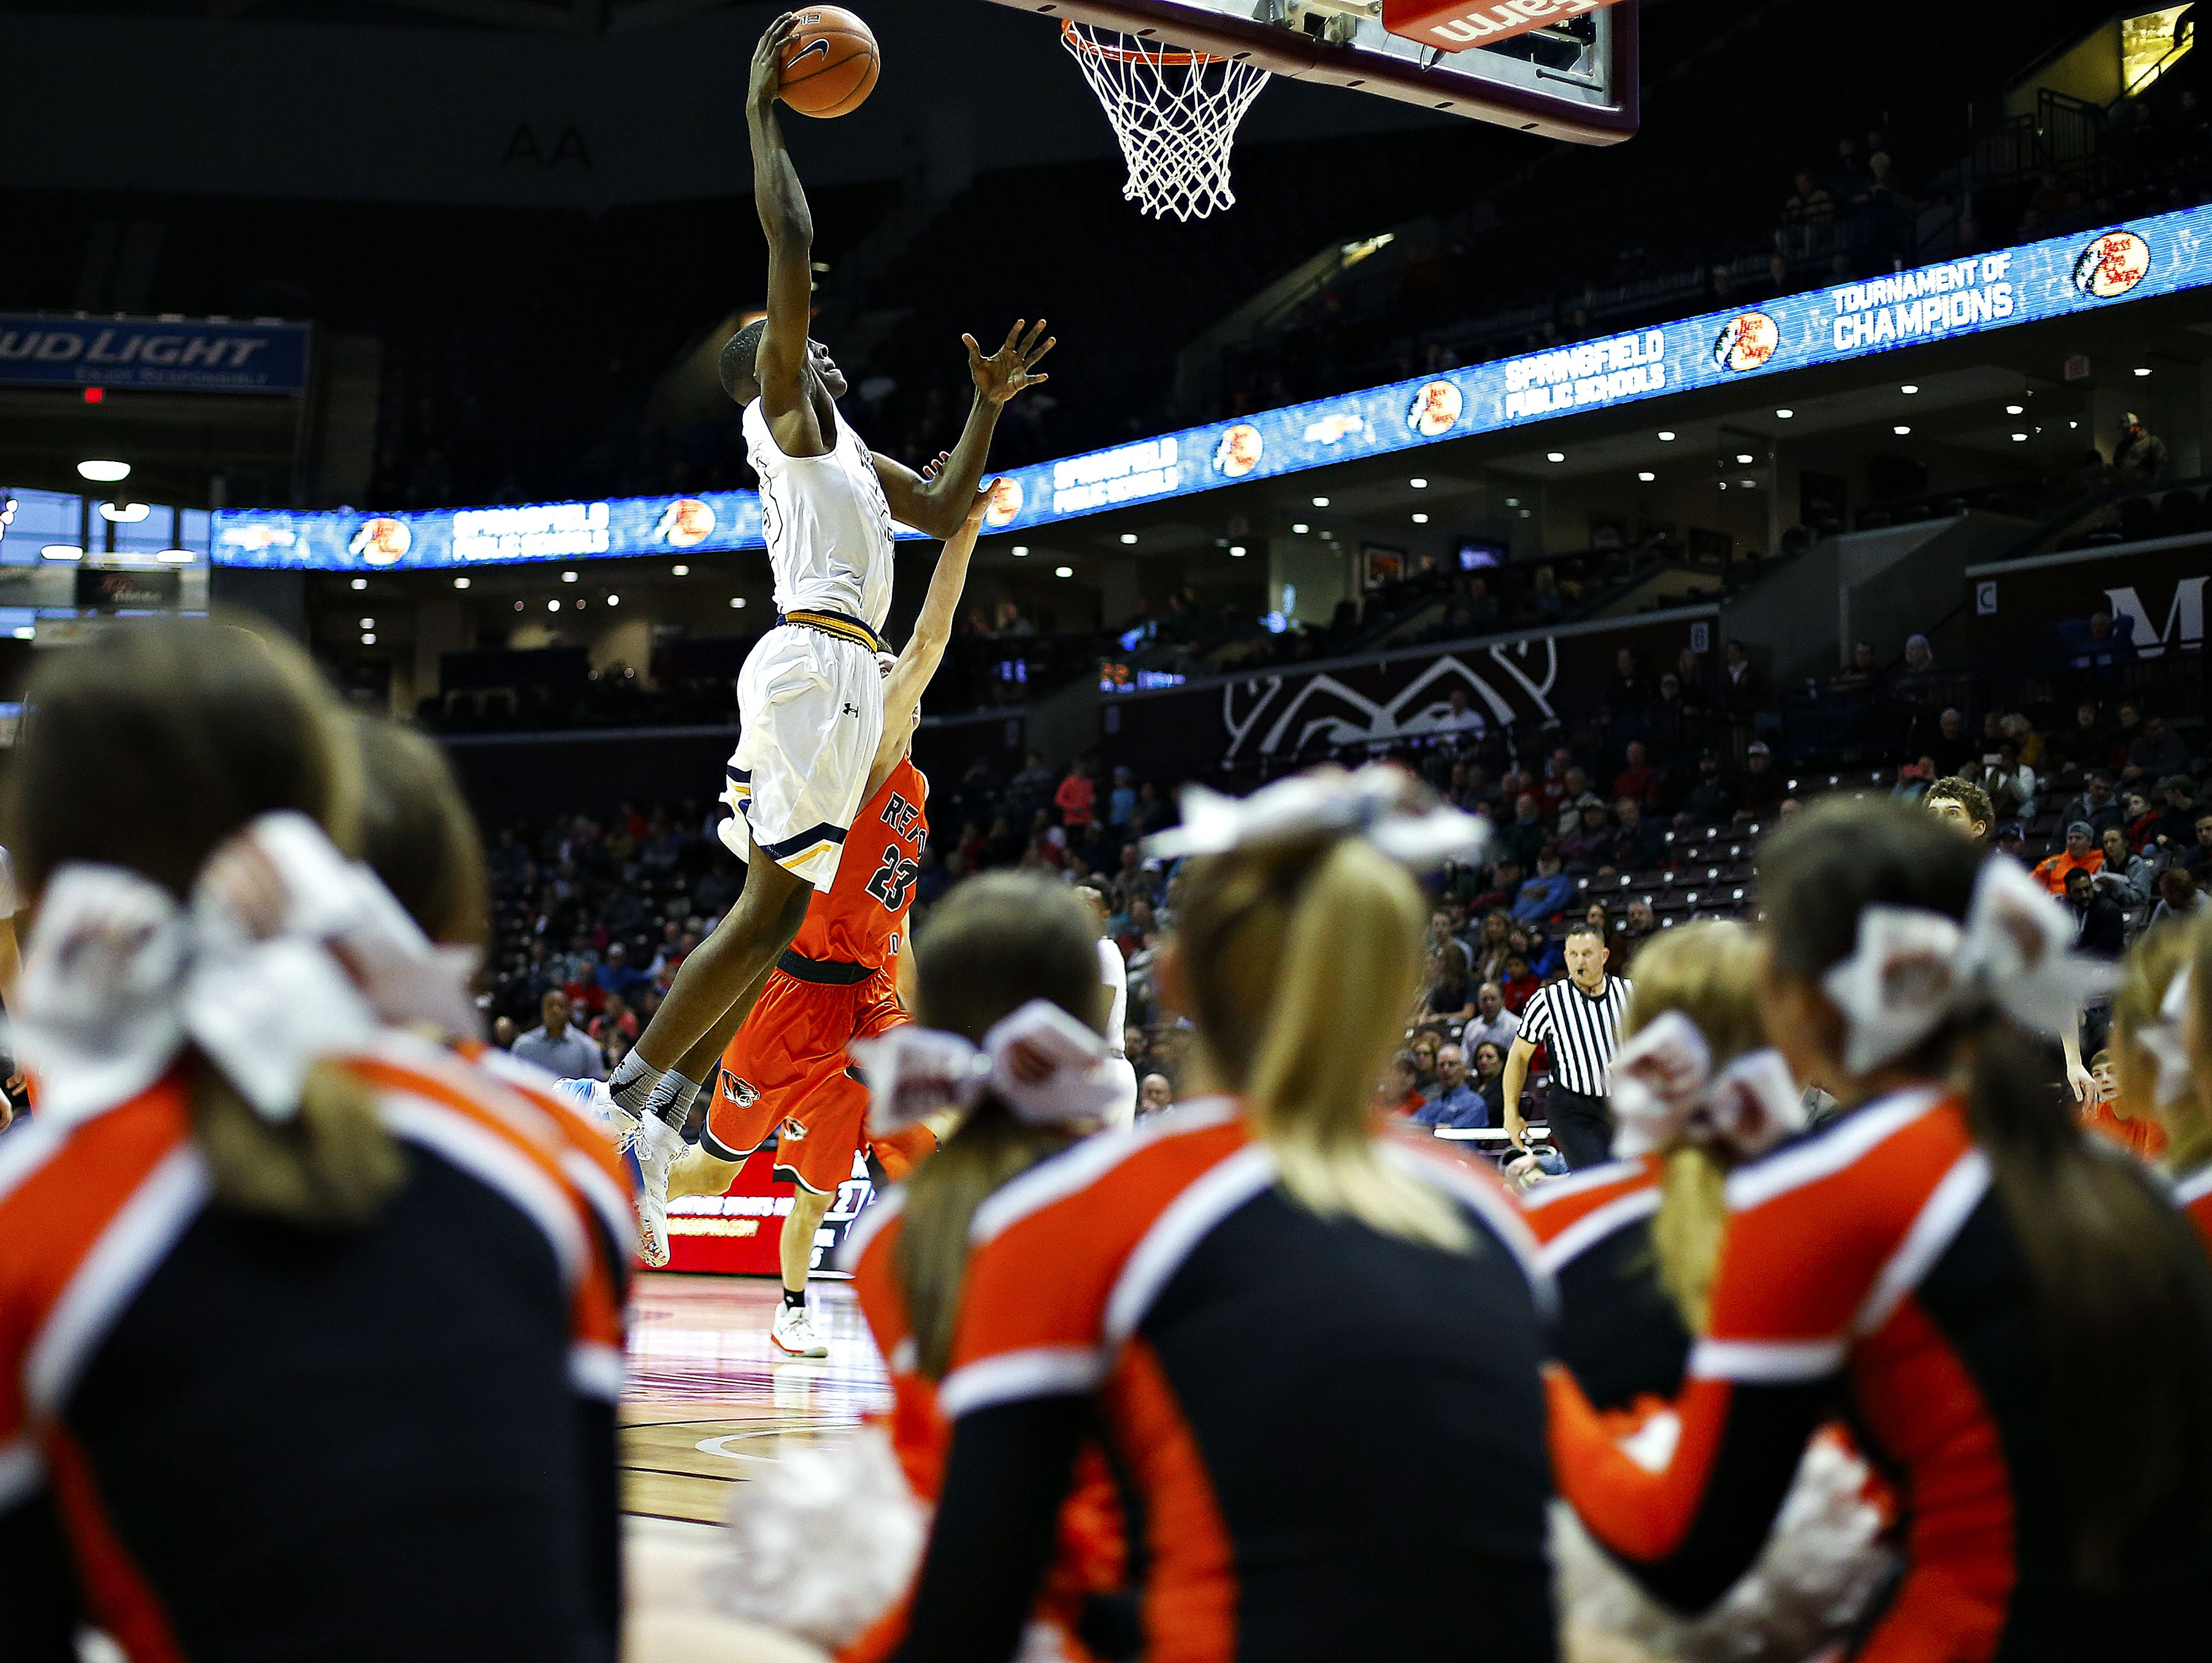 Madison Prep Academy (Baton Rouge, La.) forward Josh LeBlanc (23) dunks the ball during first quarter action of the 2017 Bass Pro Tournament of Champions high school basketball game between the Madison Prep Academy Chargers (Baton Rouge, La.) and the Republic High School Tigers (Republic, Mo.) at JQH Arena in Springfield, Mo. on Jan. 13, 2017.